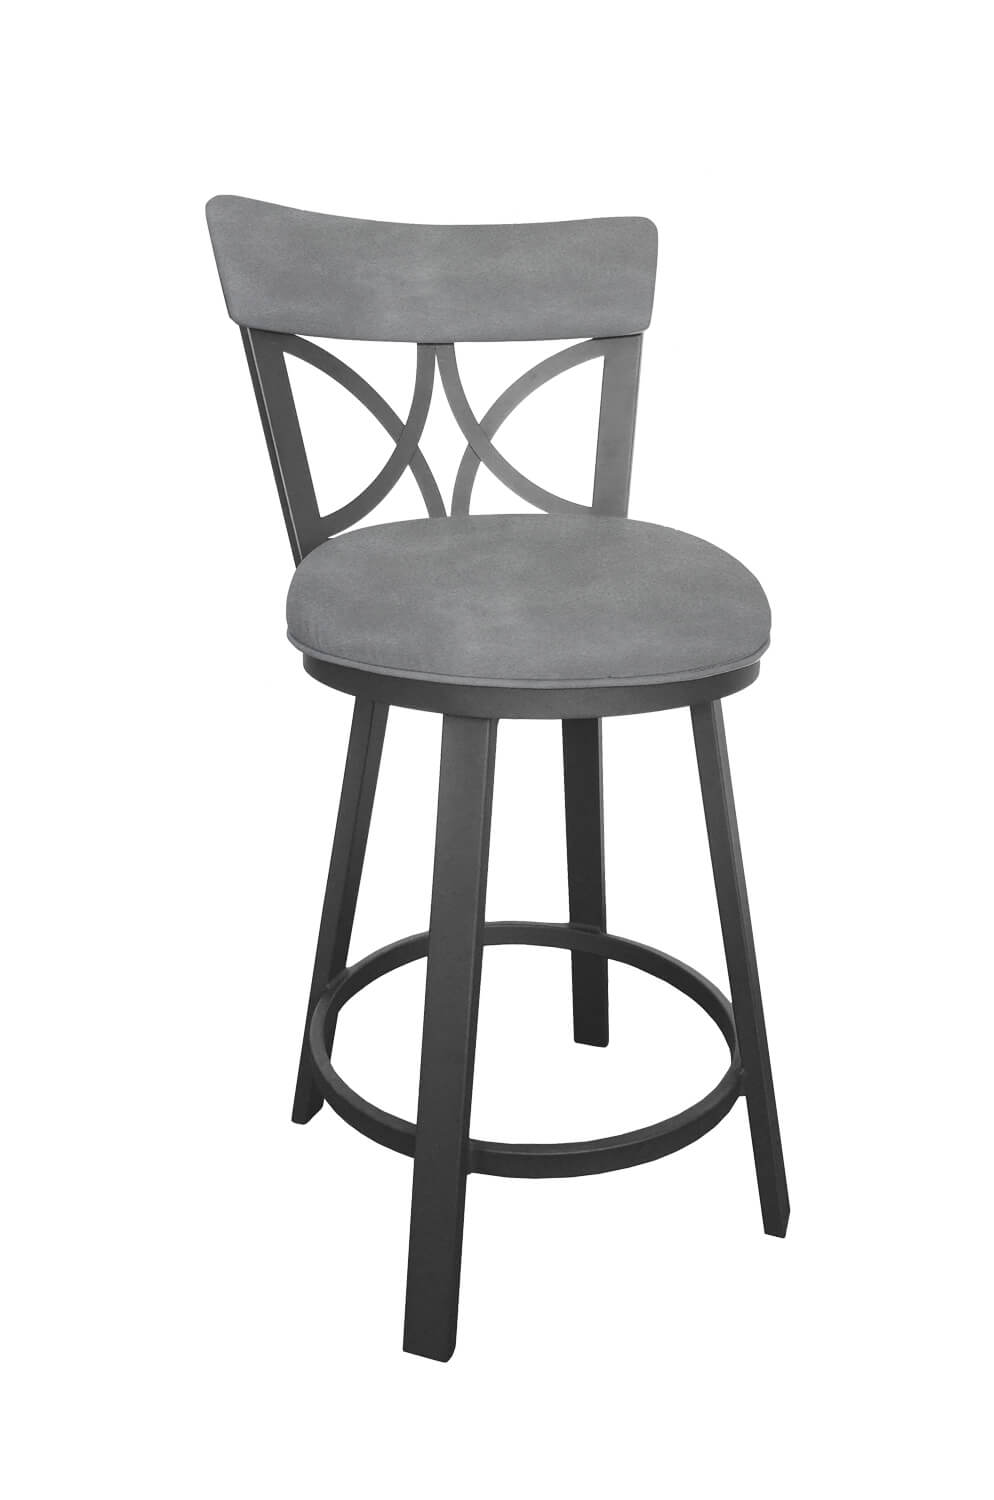 Awe Inspiring Bradley Gray Swivel Stool With Back Quick Ship Andrewgaddart Wooden Chair Designs For Living Room Andrewgaddartcom